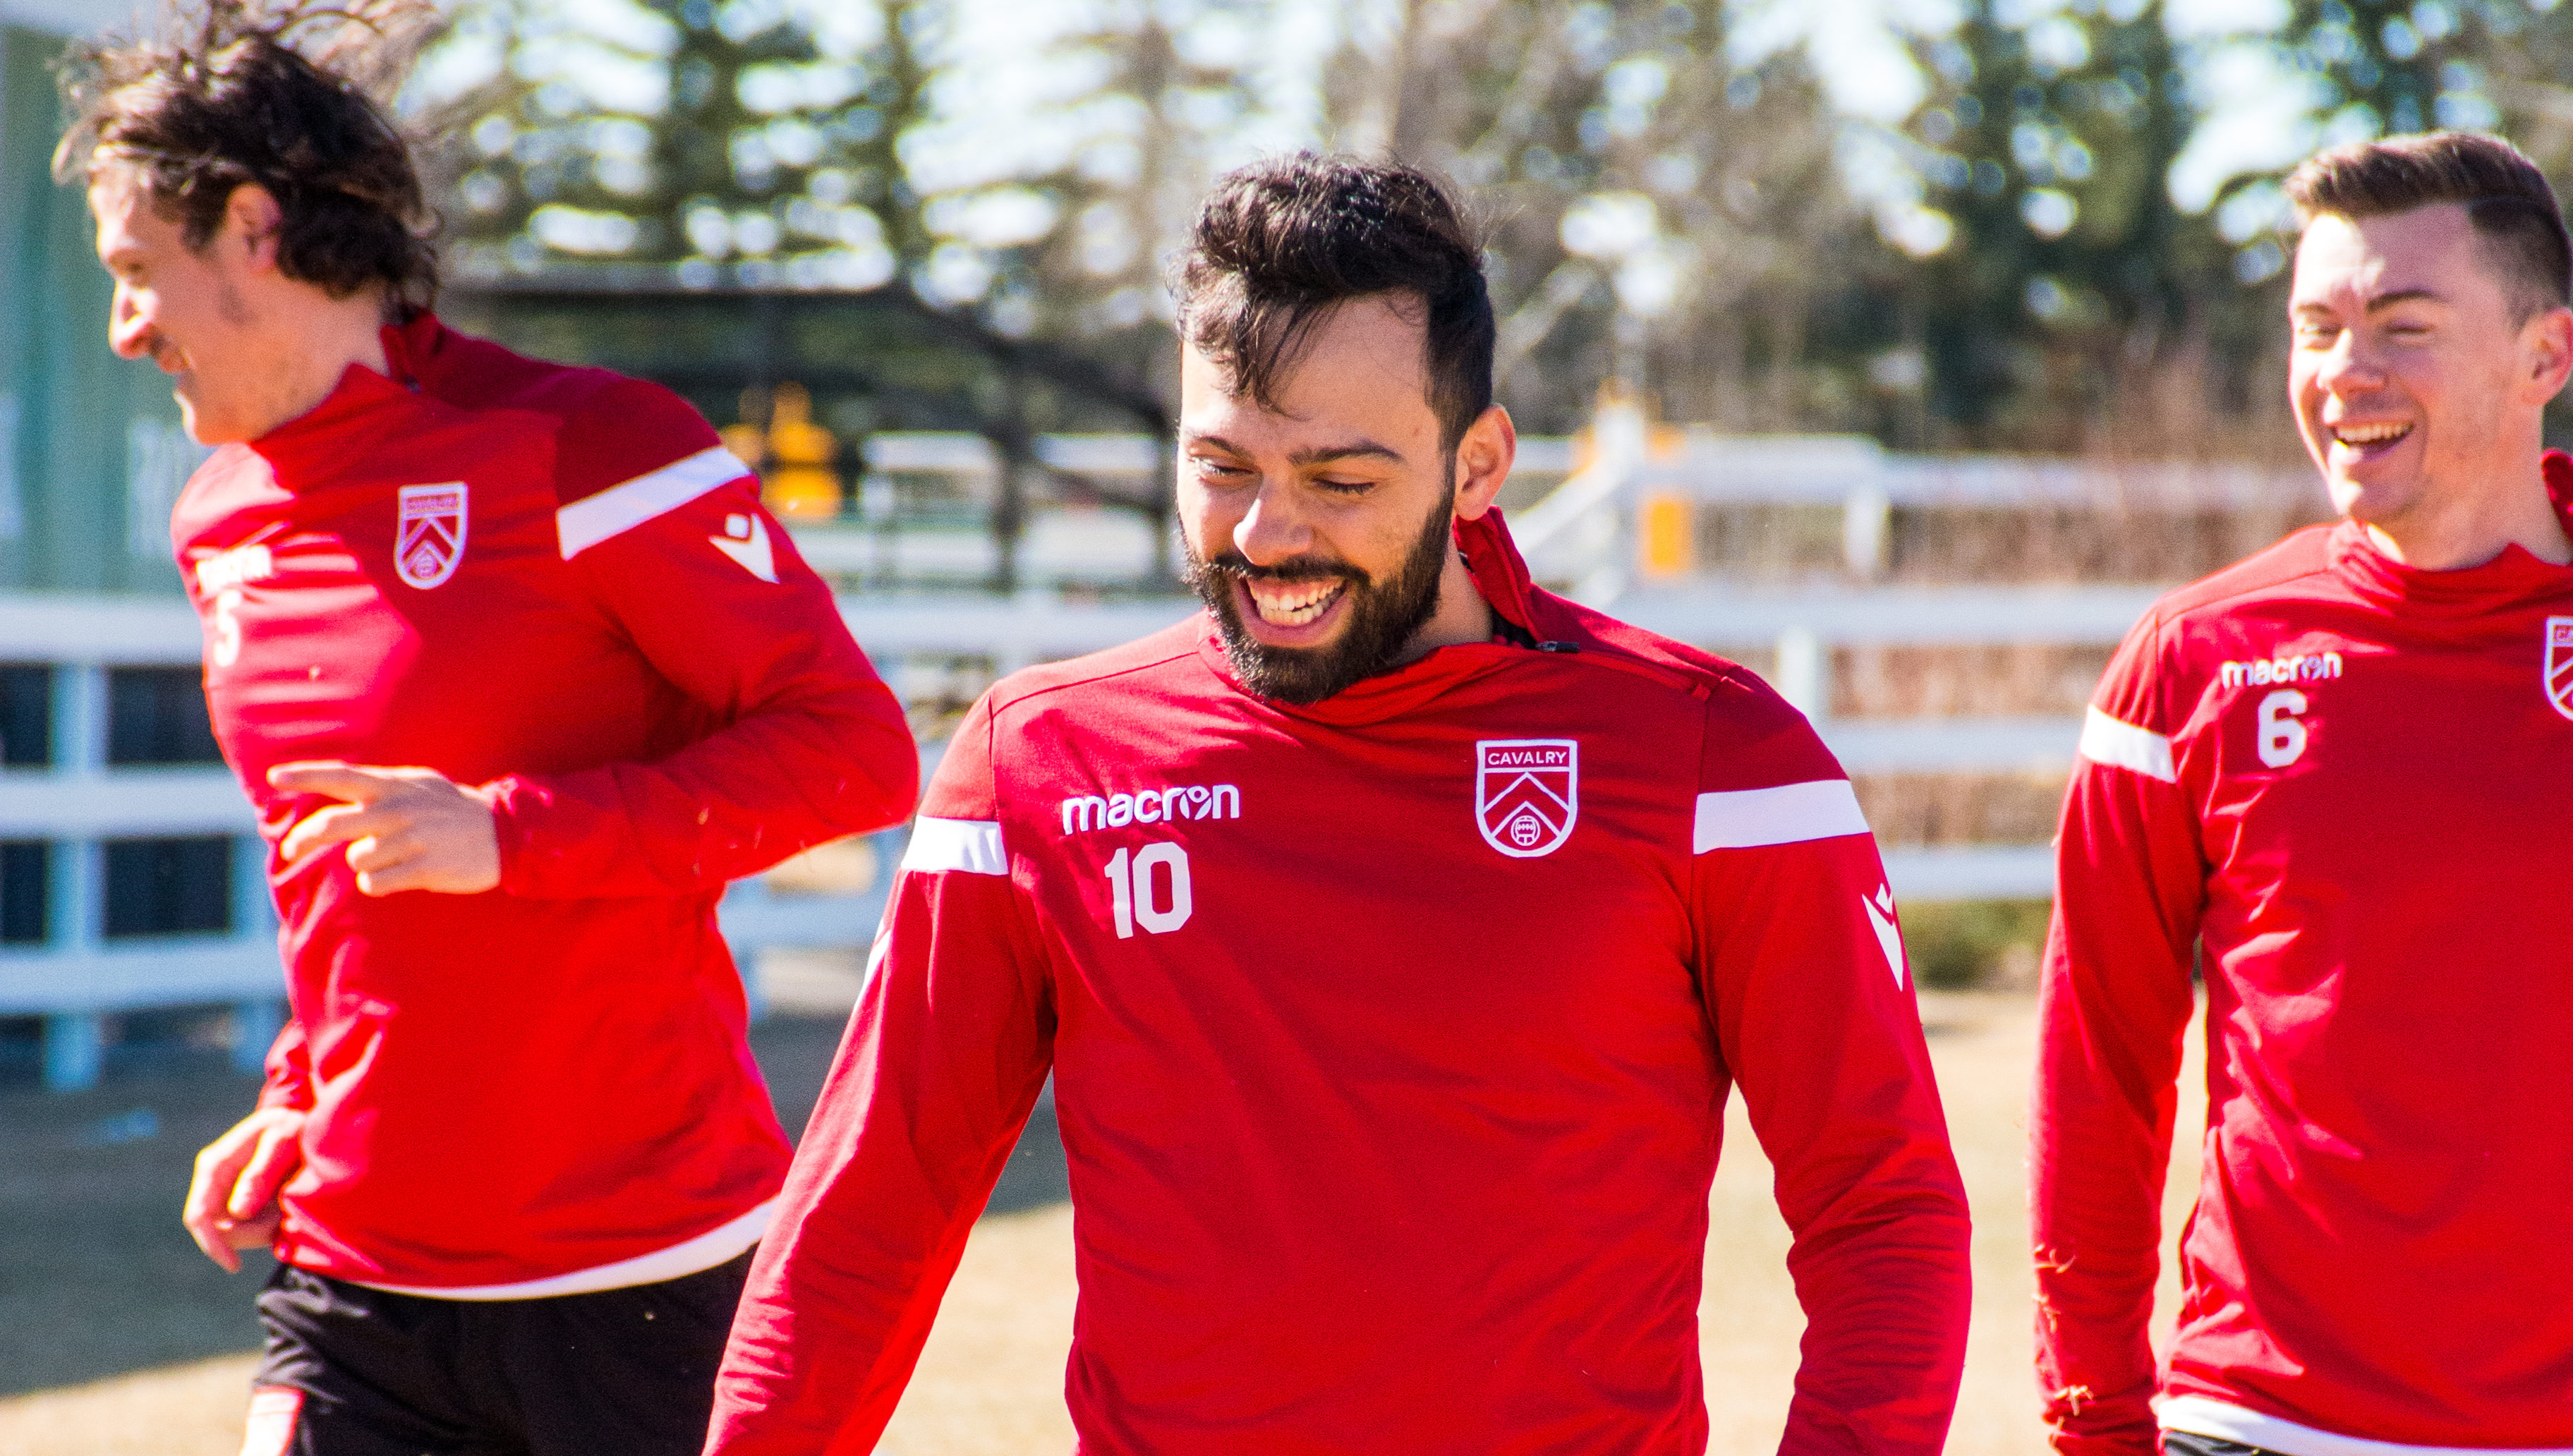 All smiles from Cavalry FC's (left to right) Mason Trafford, Sergio Camagro, and Nik Ledgerwood. (Cavalry FC)